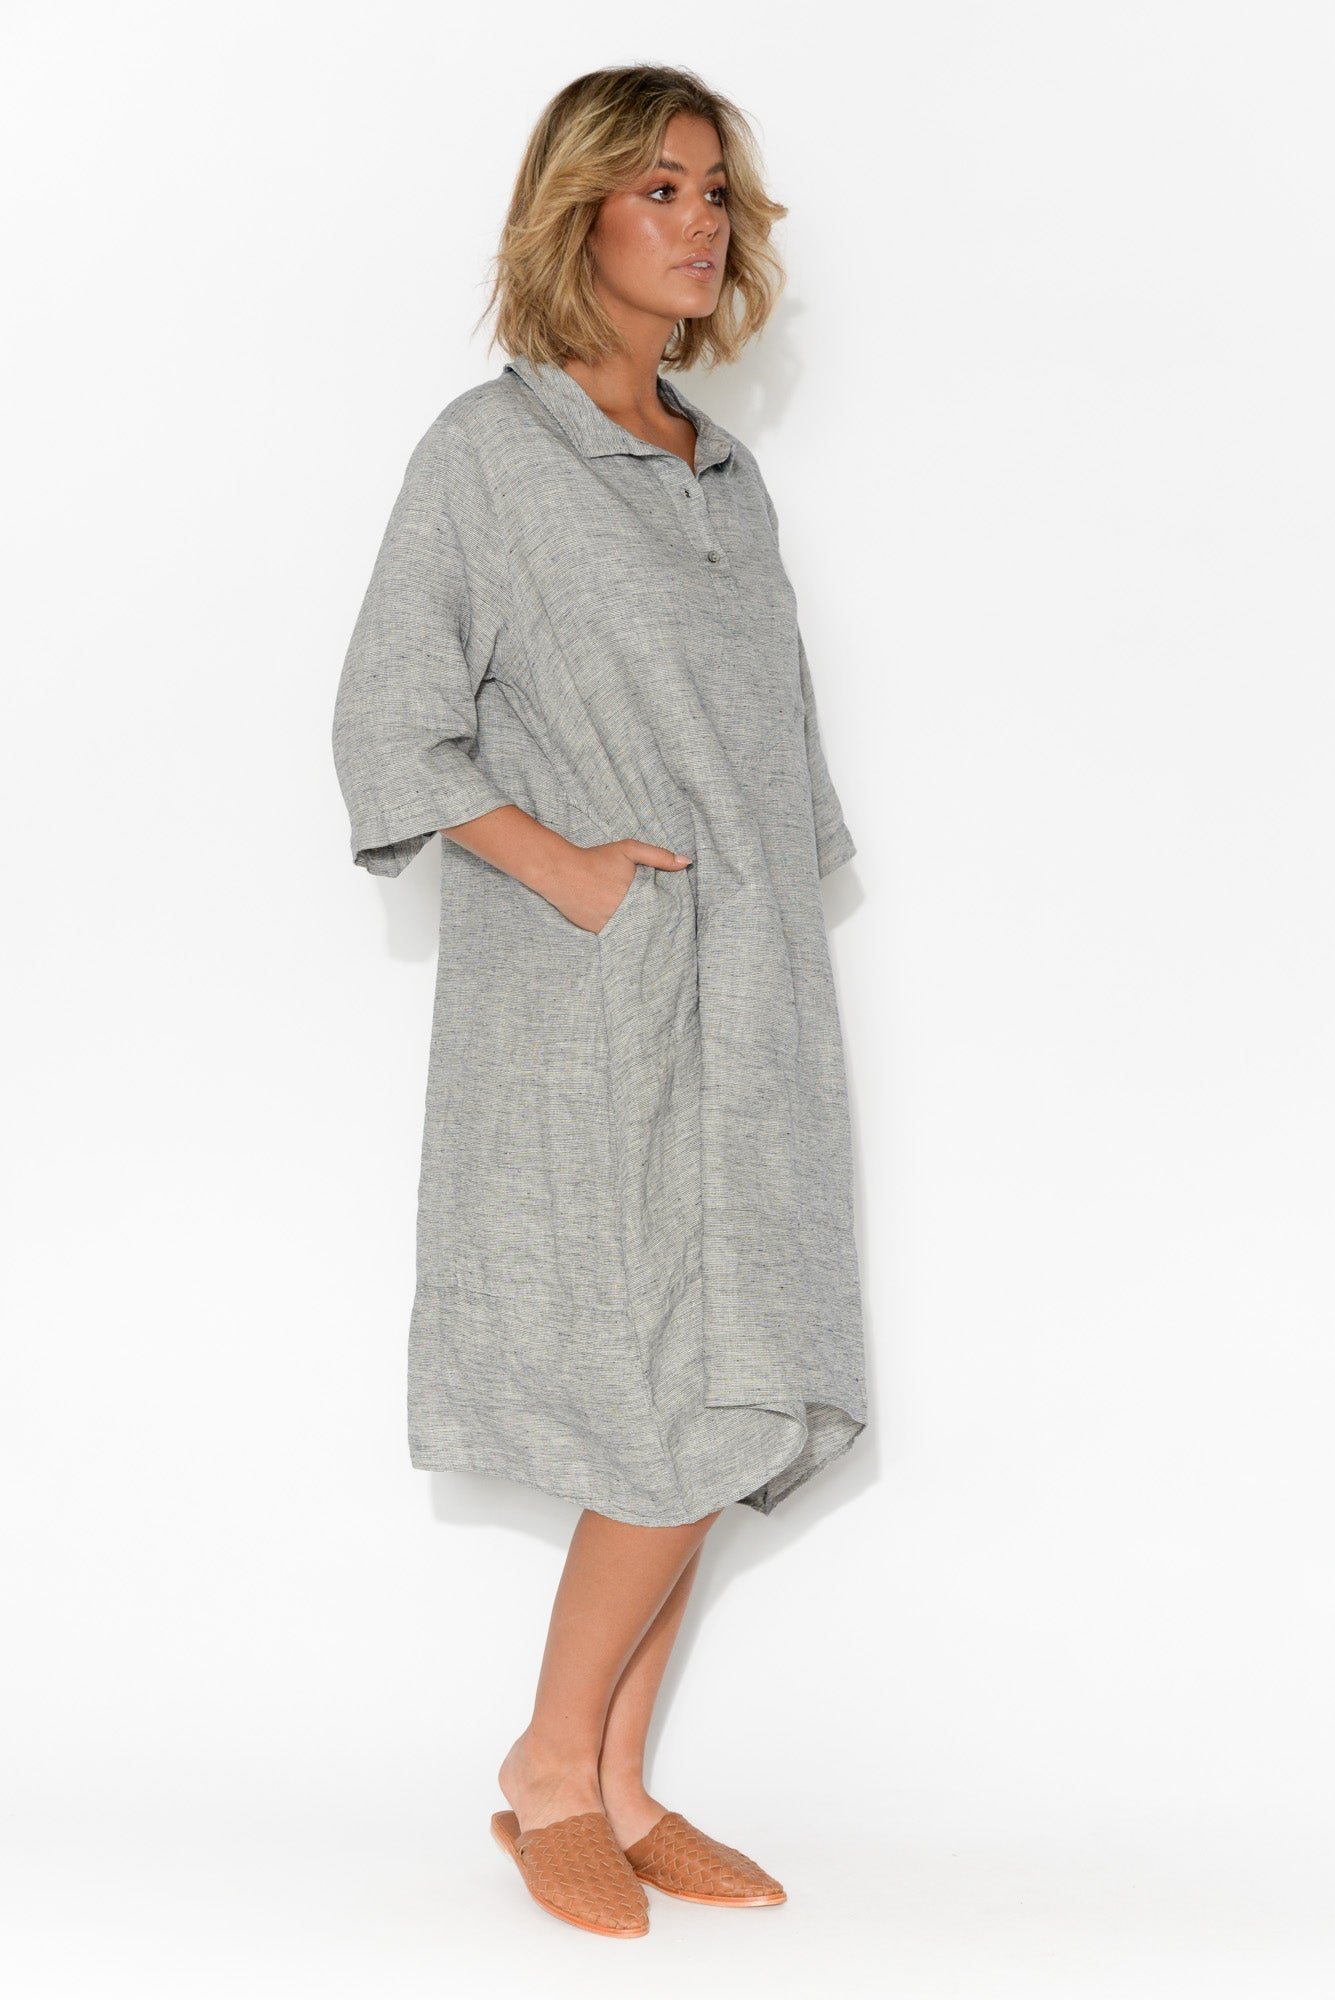 Austen Grey Linen Pocket Dress